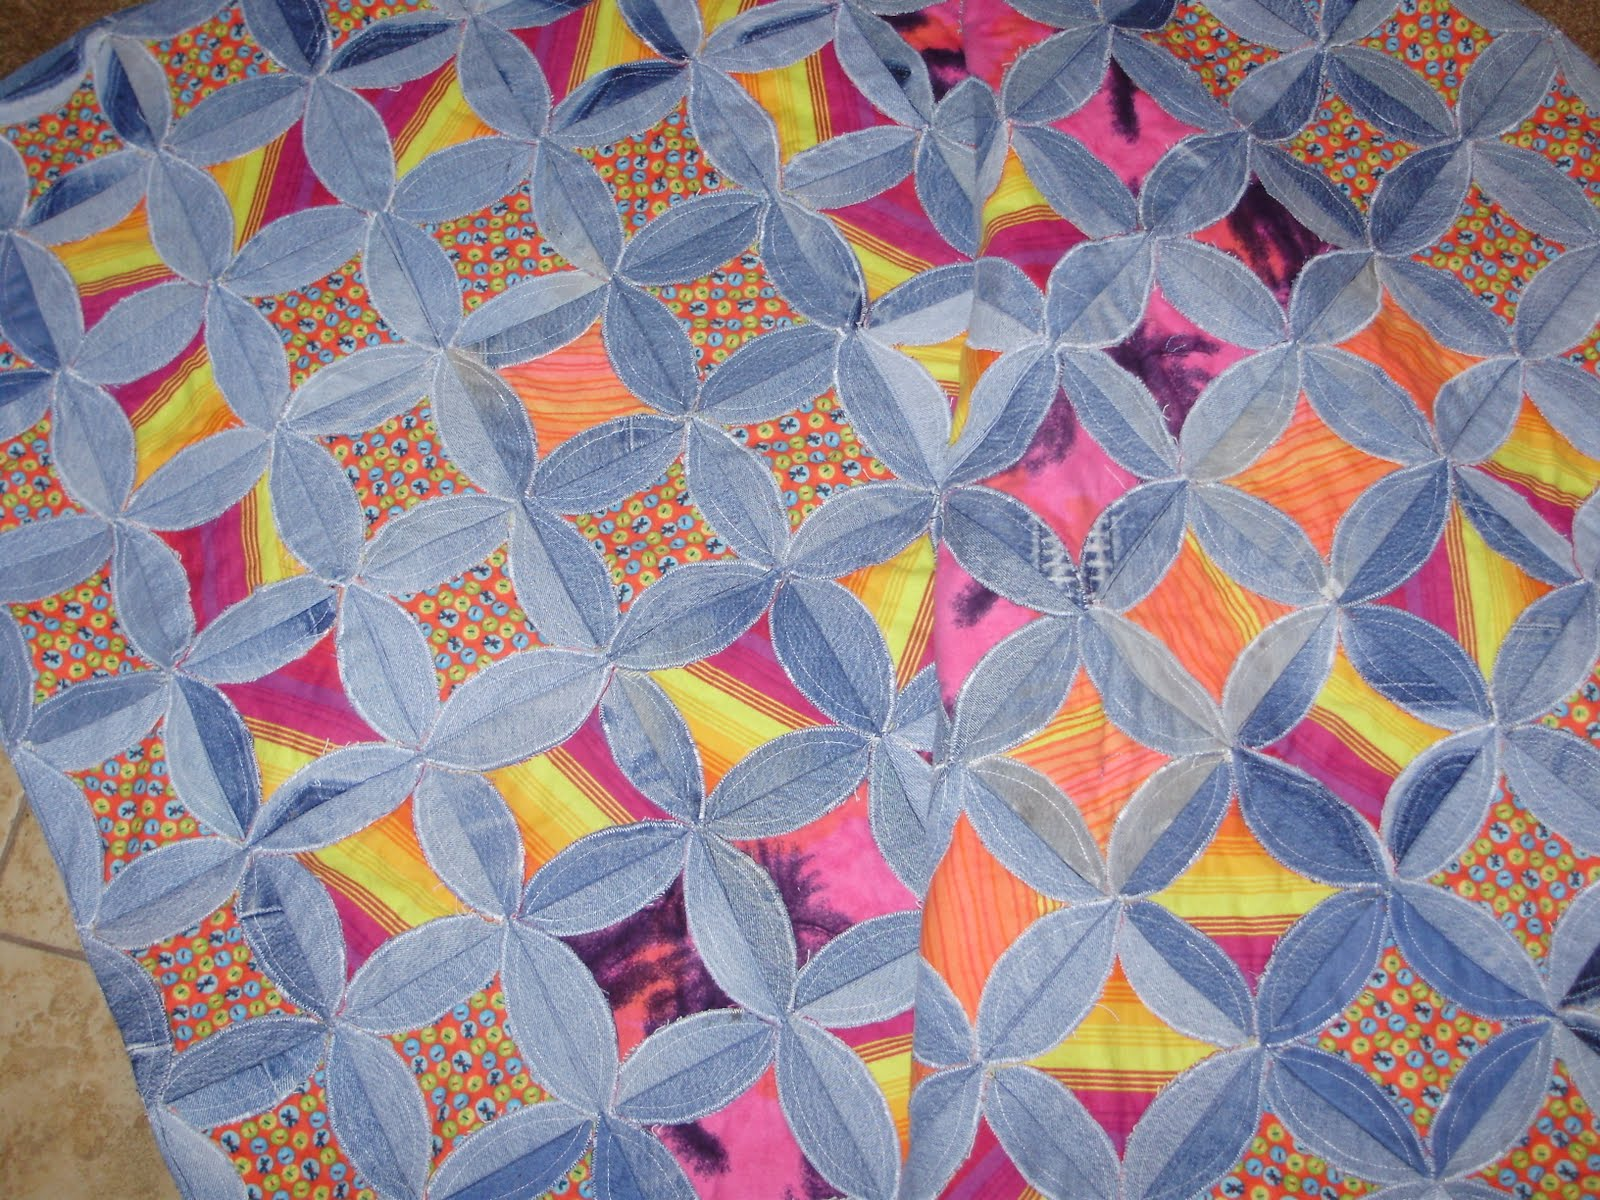 Gazselin Denim Circle Quilt